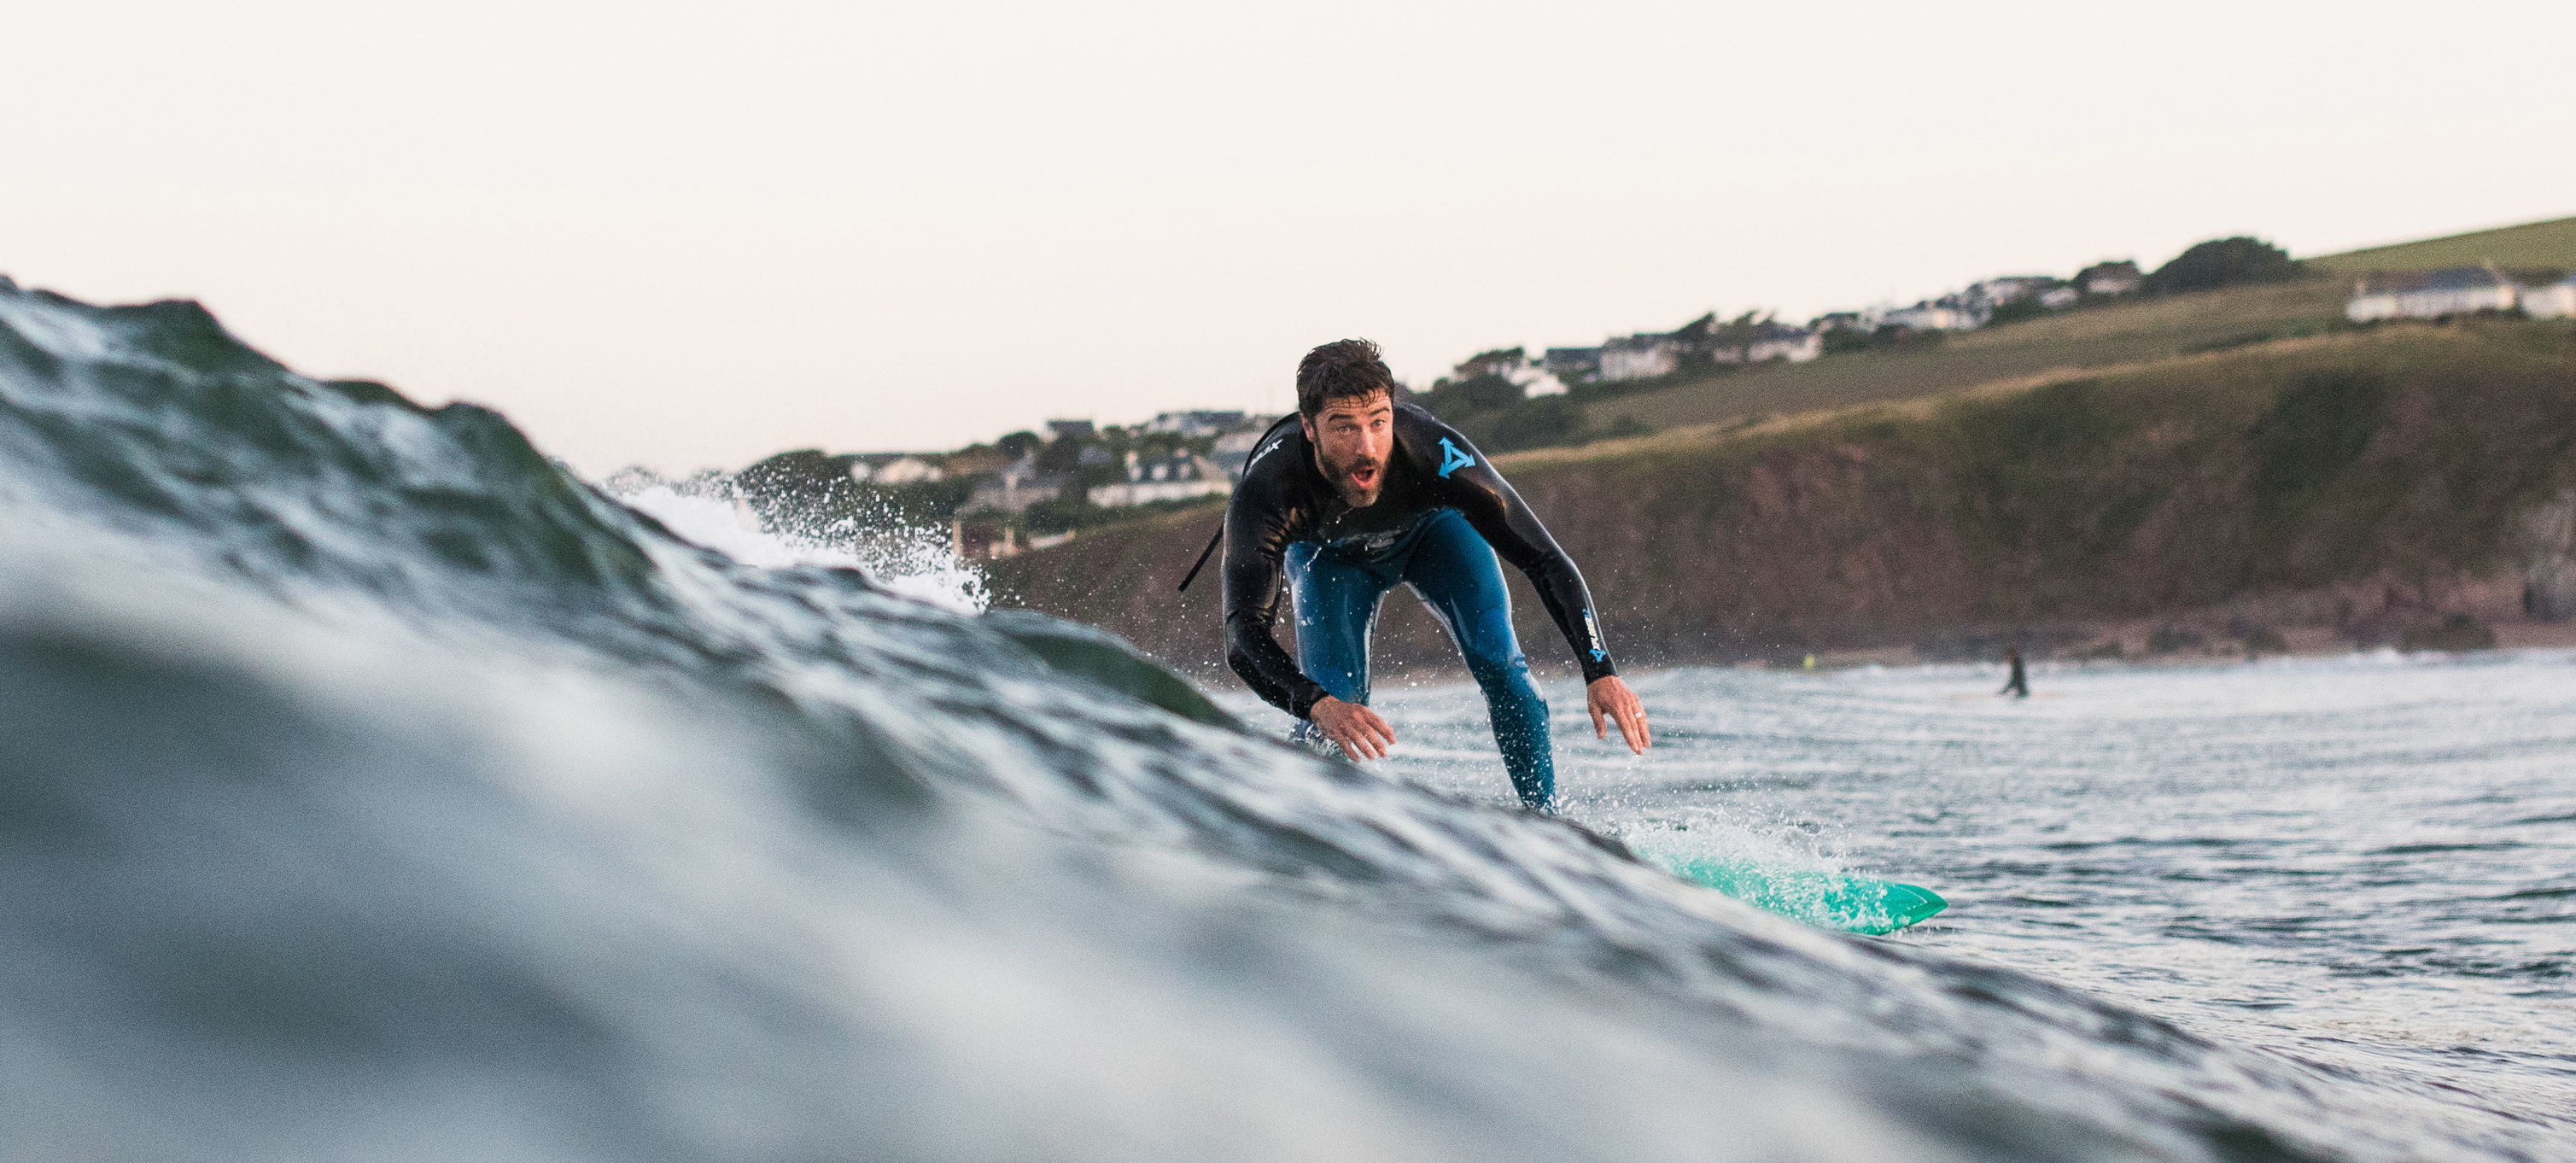 WHY I LOVE SURF PHOTOGRAPHY